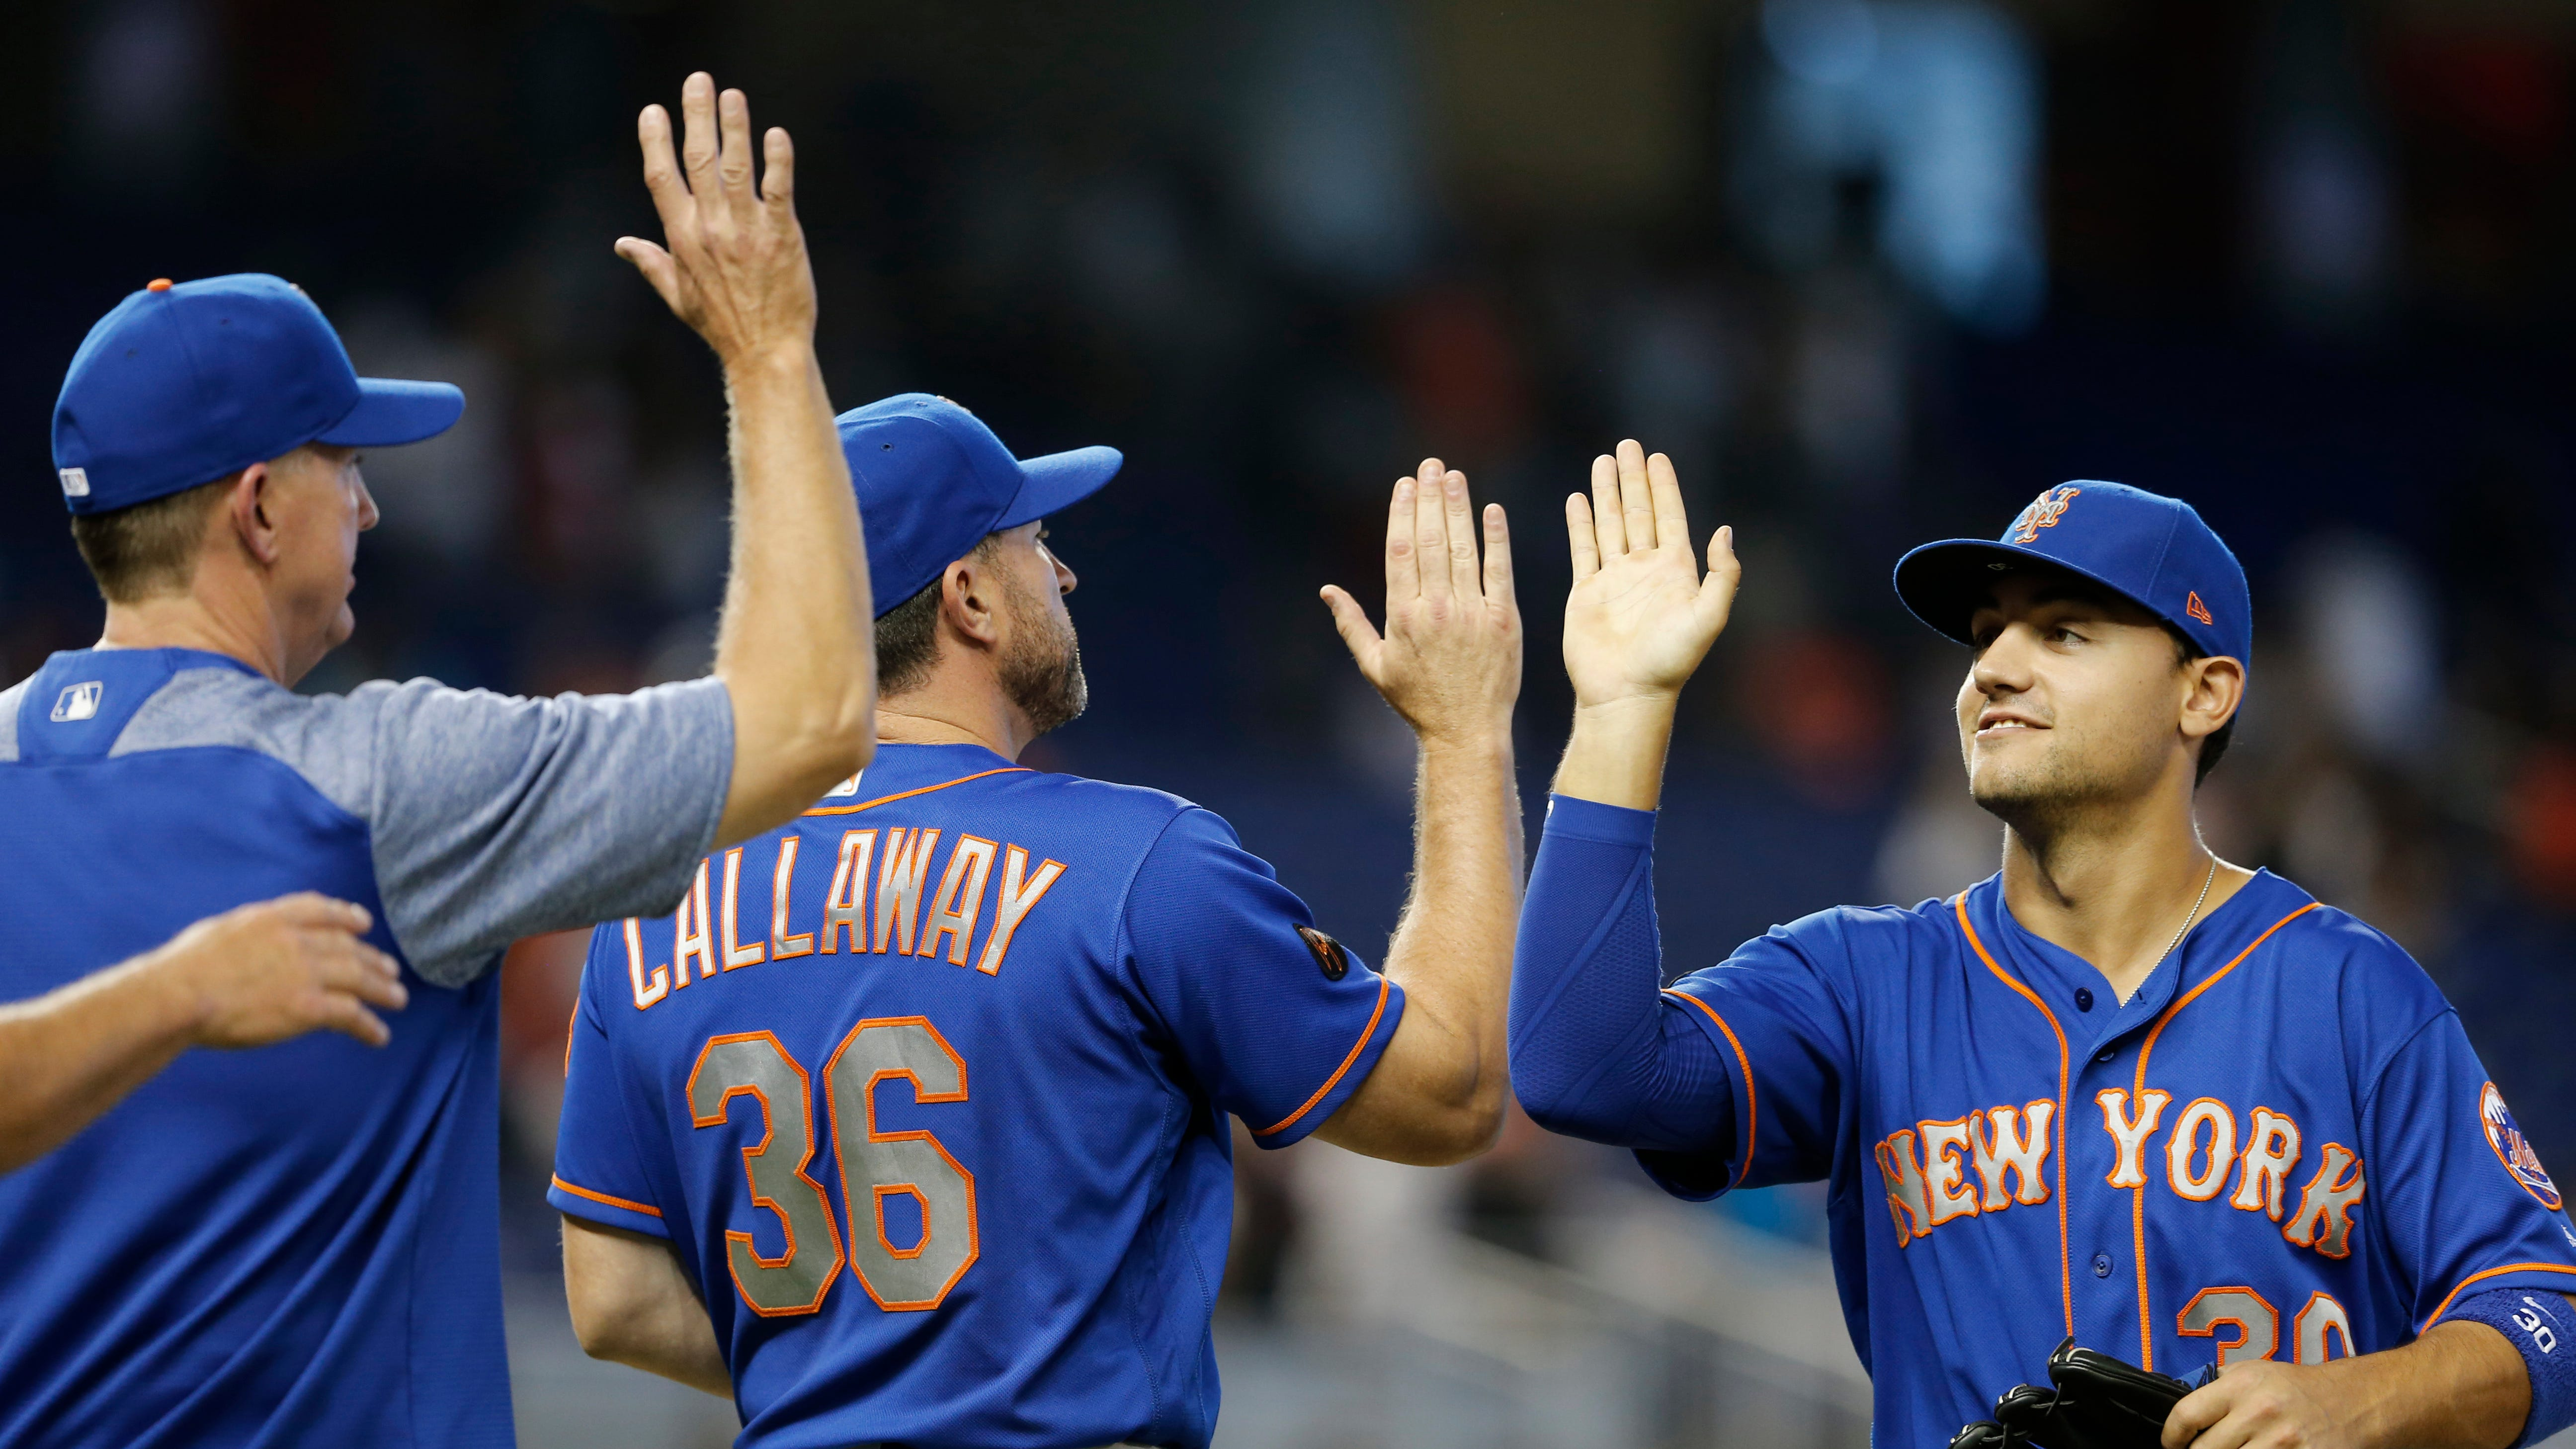 It's about to get hectic for the Mets as they travel to four cities to play eight games on the East Coast.